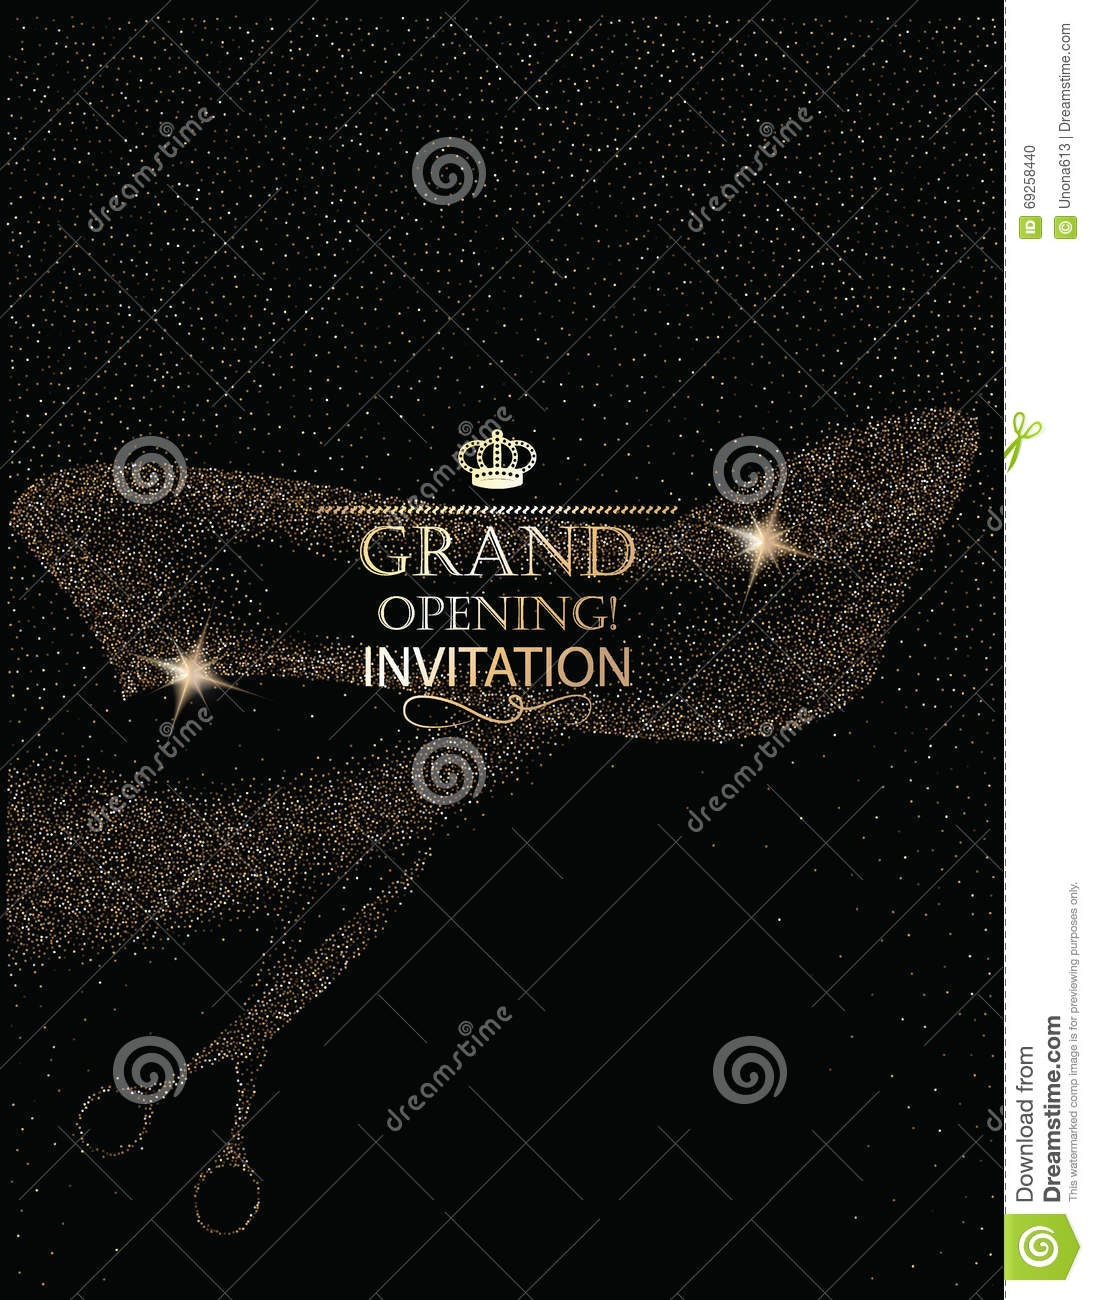 Grand Opening Invitation Card With Abstract Scissors And Ribbon – Grand Opening Invitation Cards